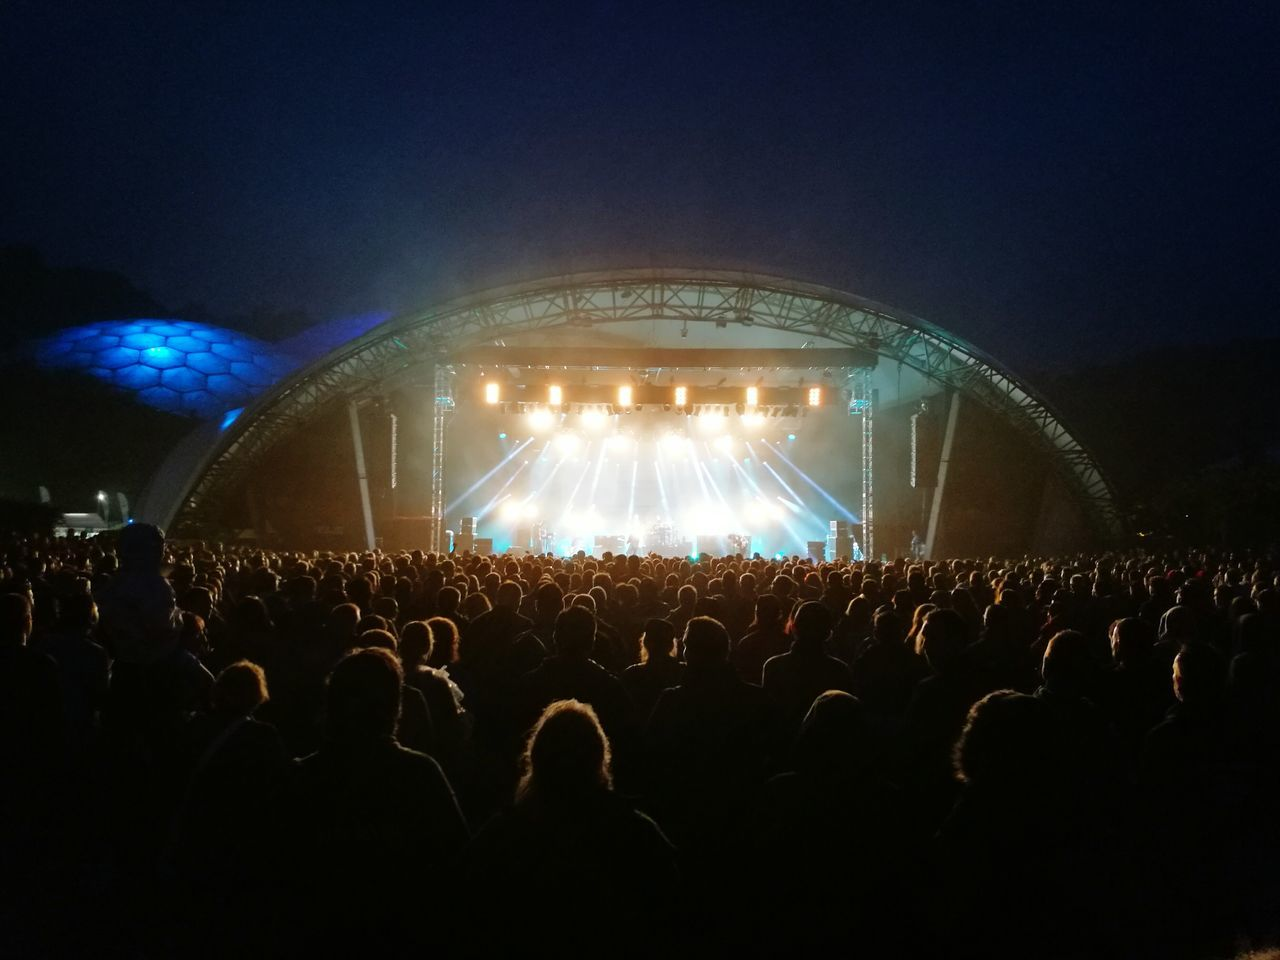 Check This Out Concert Gigs Crowd Edensessions Music Hanging Out Showcase July